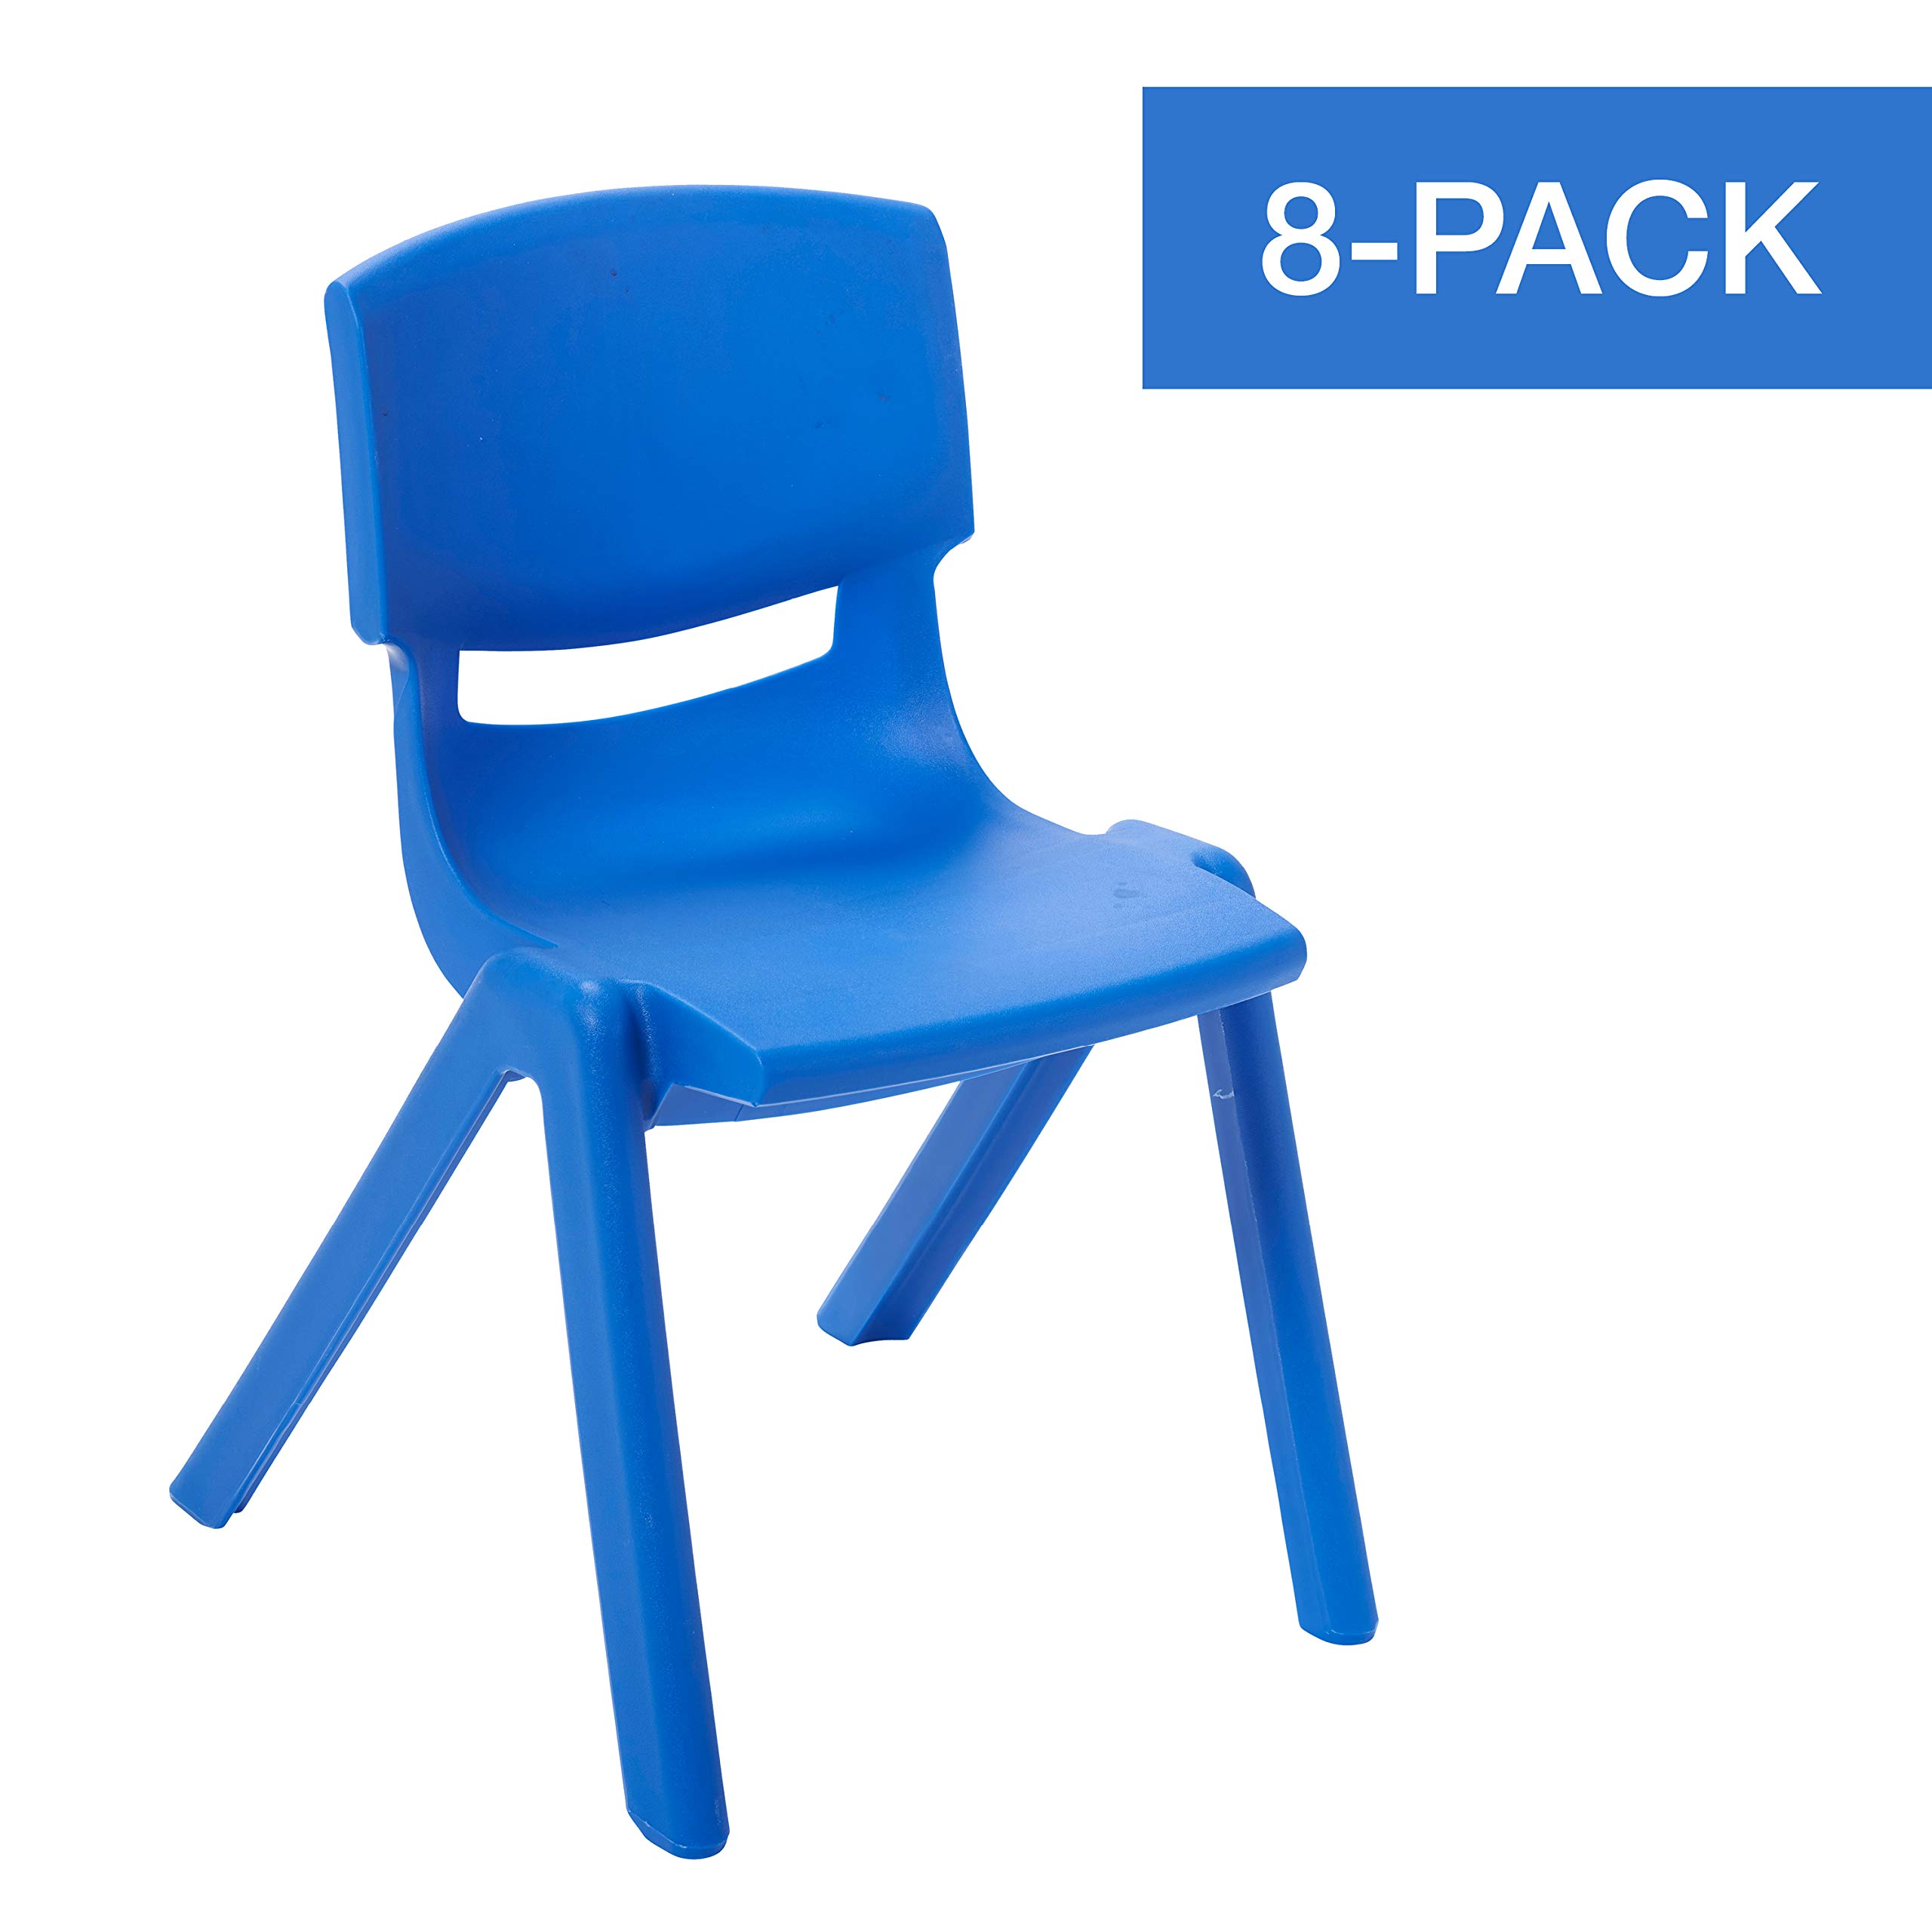 ECR4Kids 14 inch Plastic Stackable Classroom Chairs, Indoor/Outdoor Resin Stack Chairs for Kids, Blue (8-Pack)